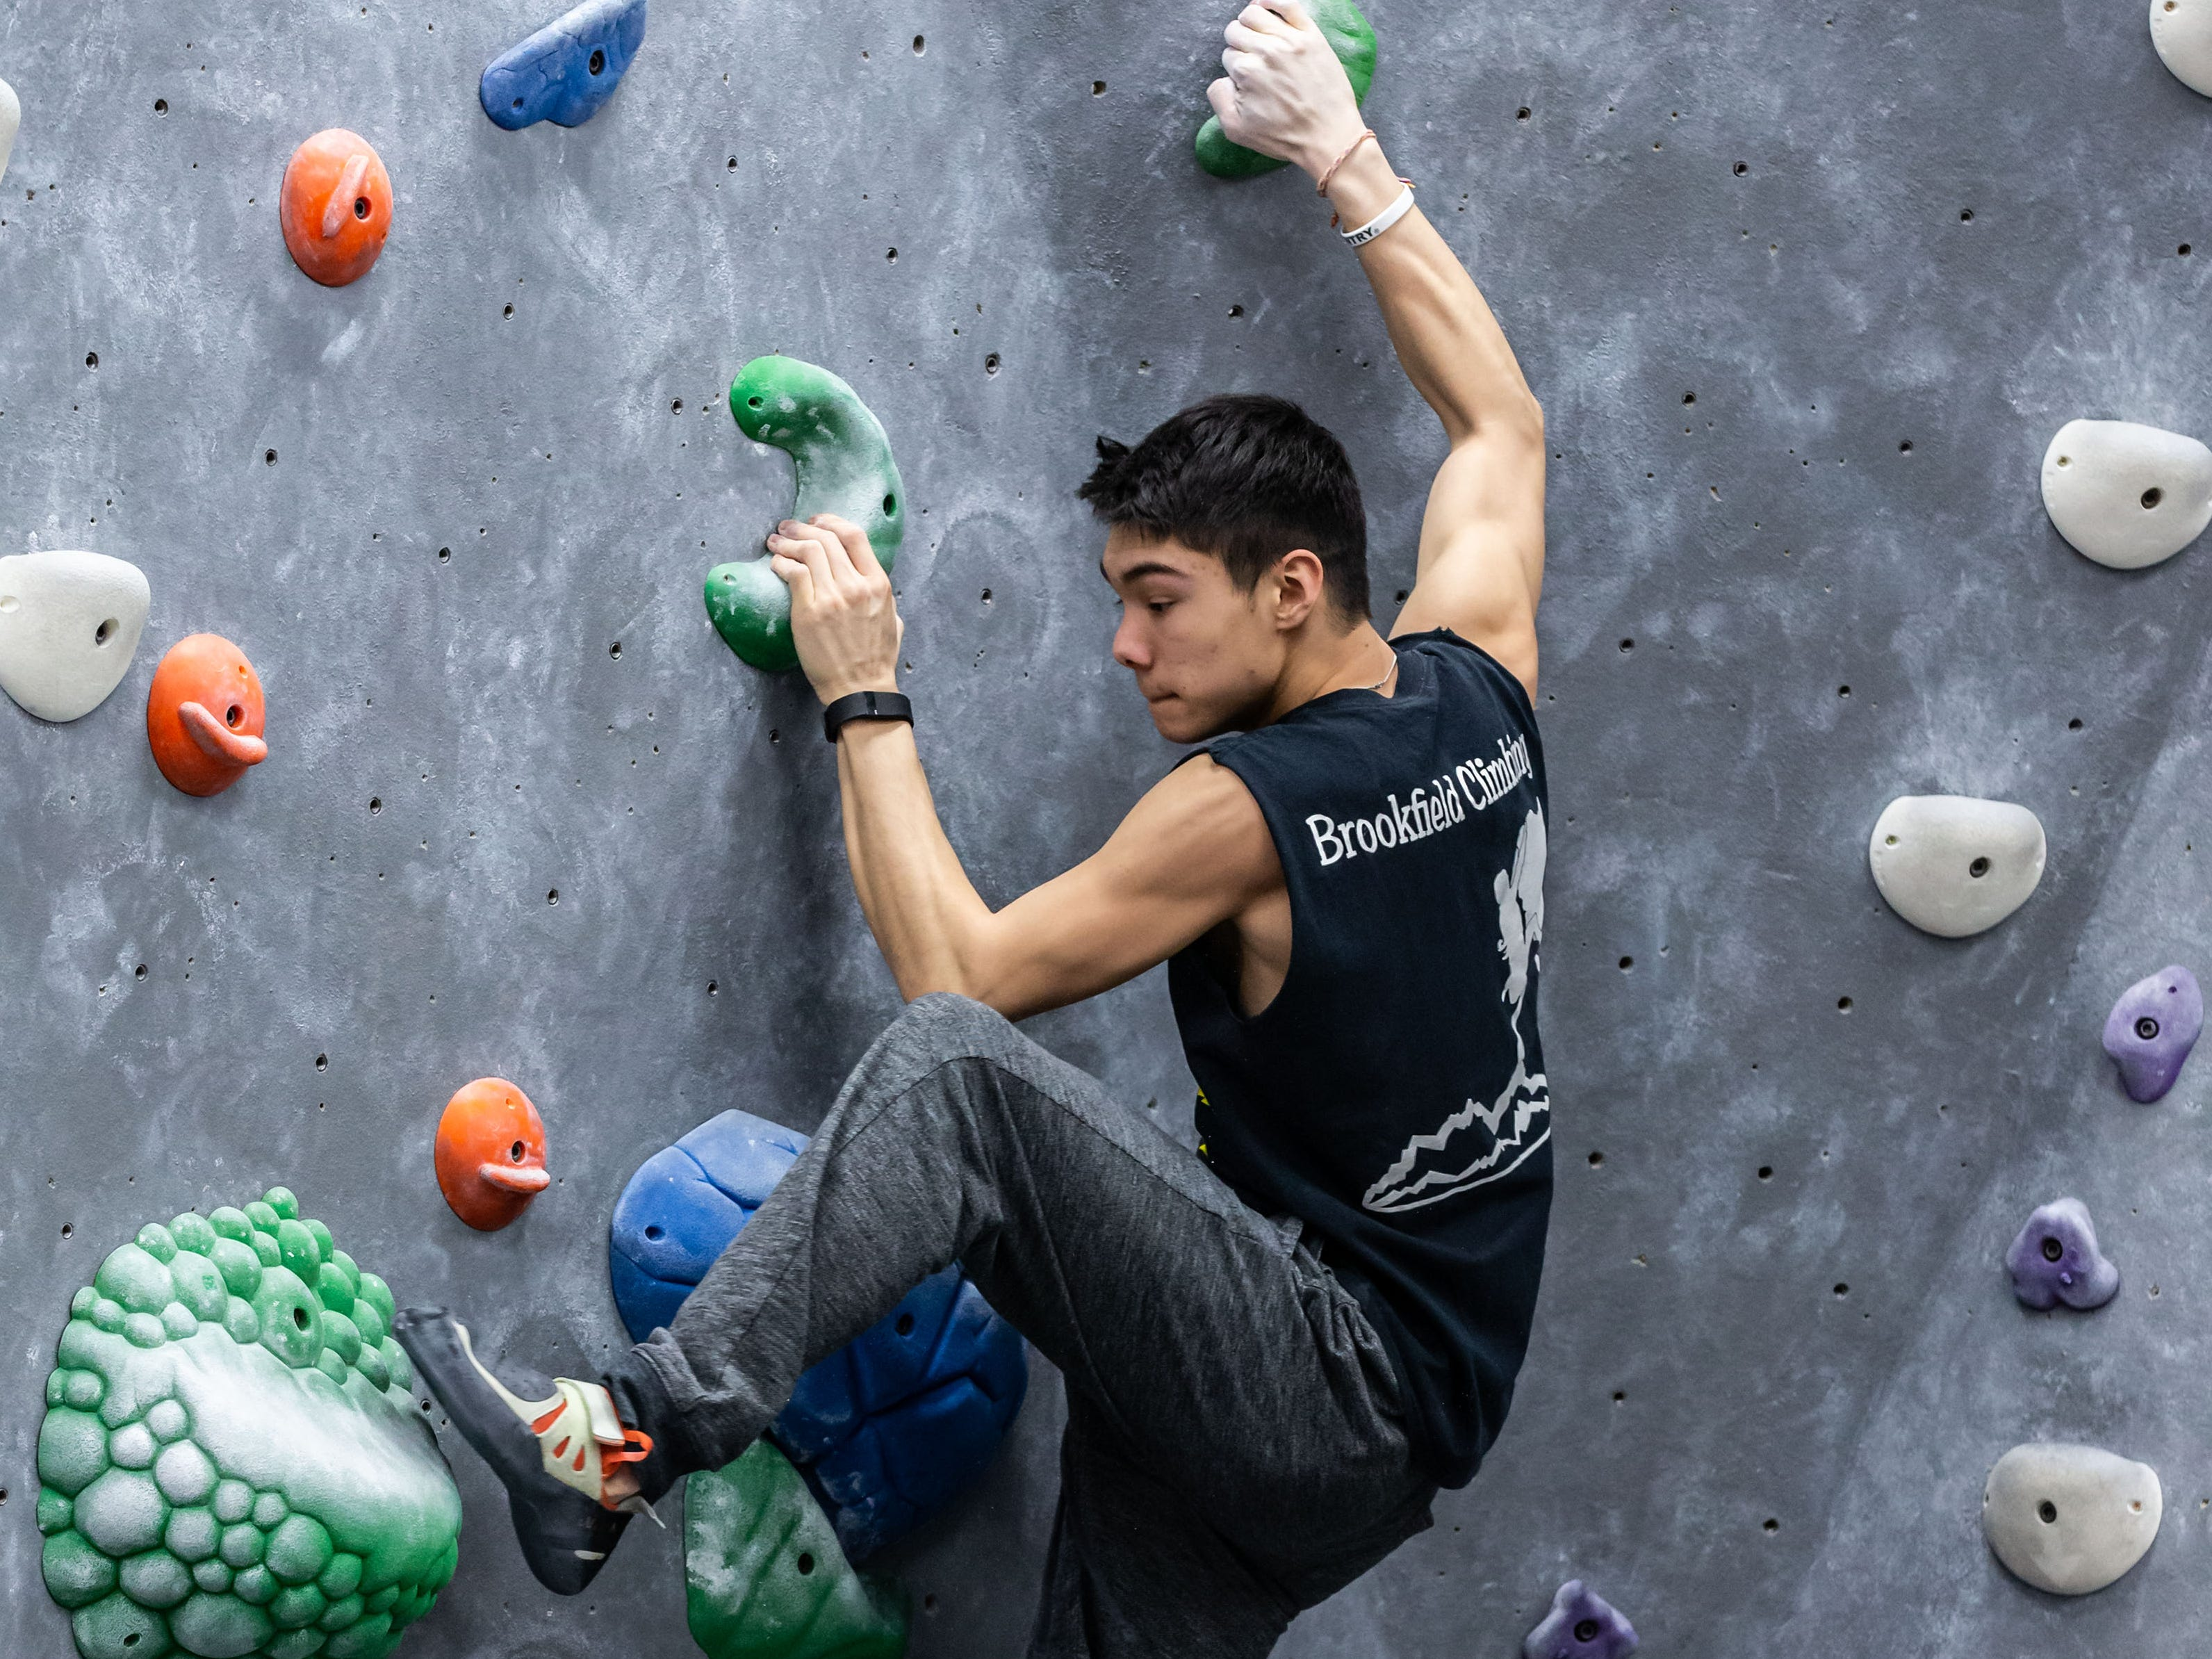 Brookfield East junior Blake Bautch scales a bouldering wall during practice with his high school climbing team at Adventure Rock in Brookfield on Monday, Jan. 7, 2019.